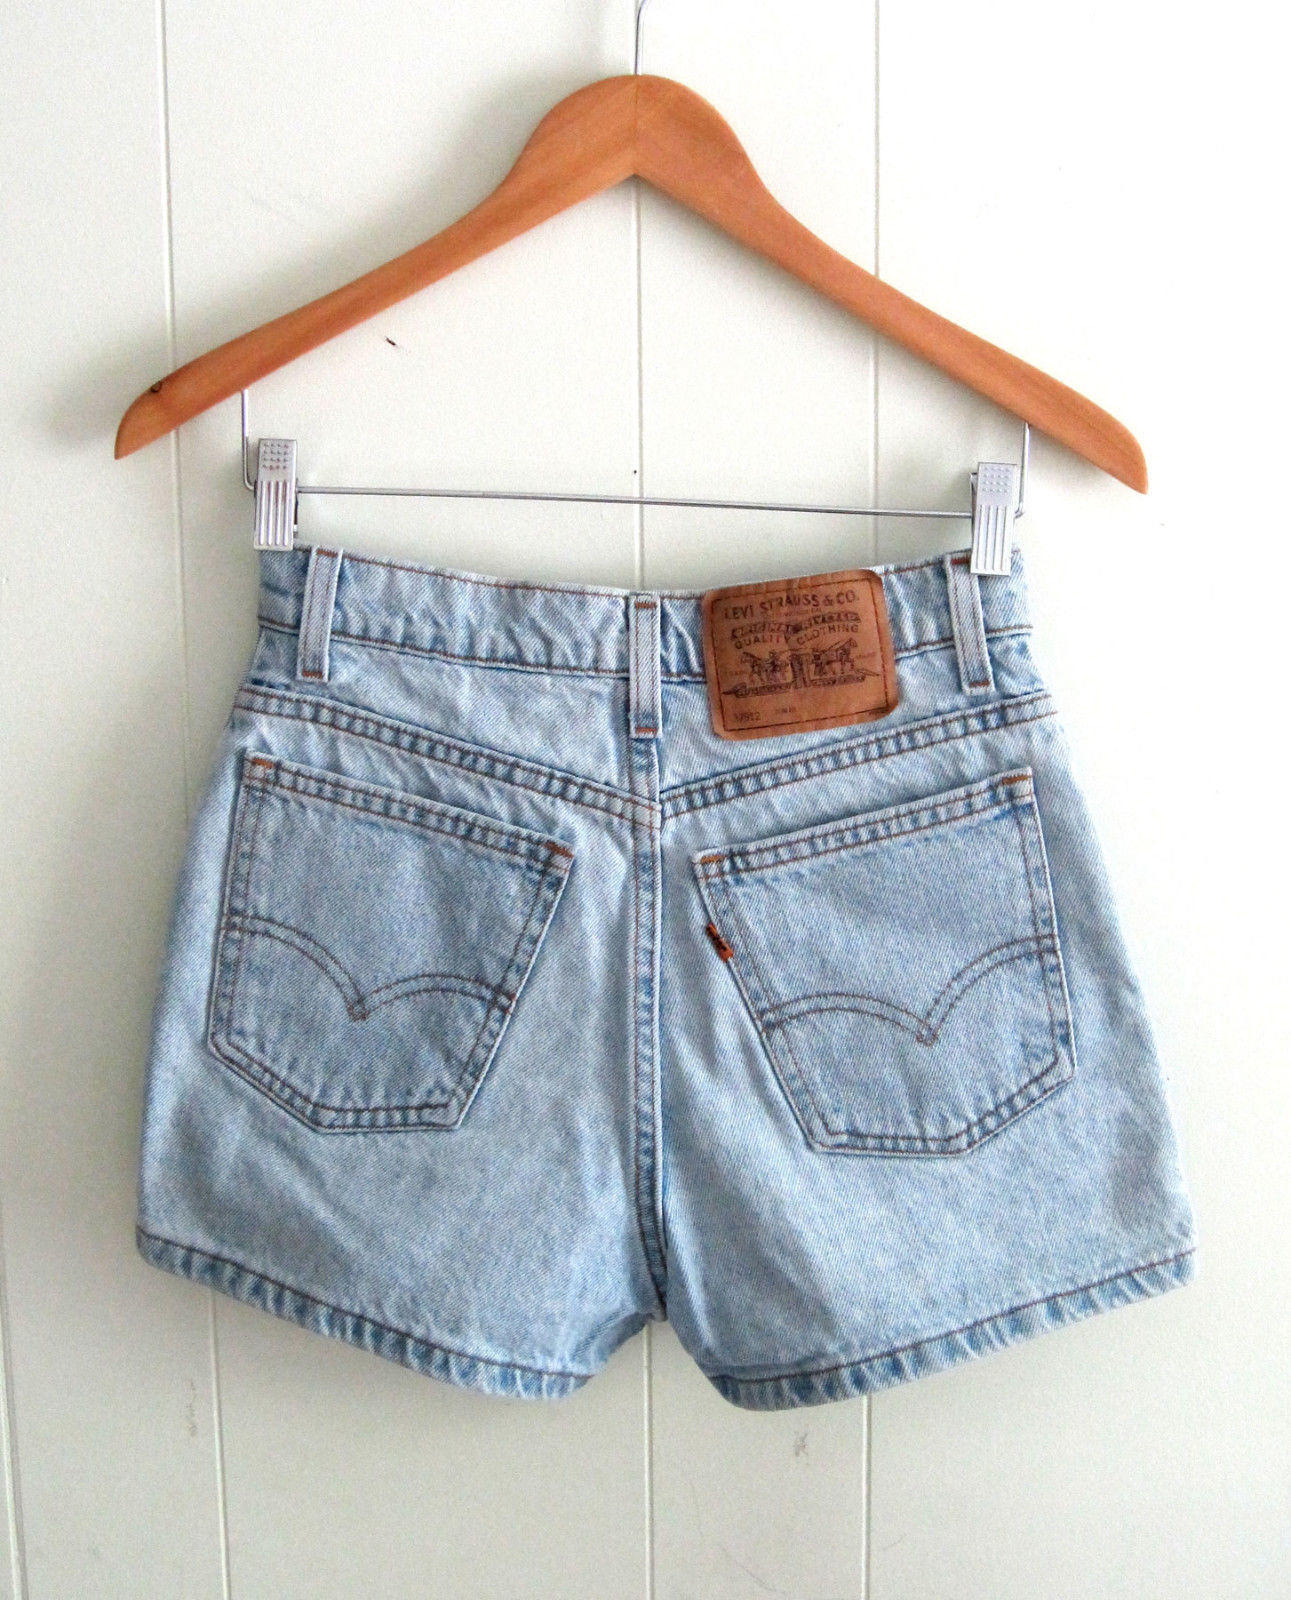 6b002473c Vintage 912 Levi's Light Wash High from thefamilyvintage on